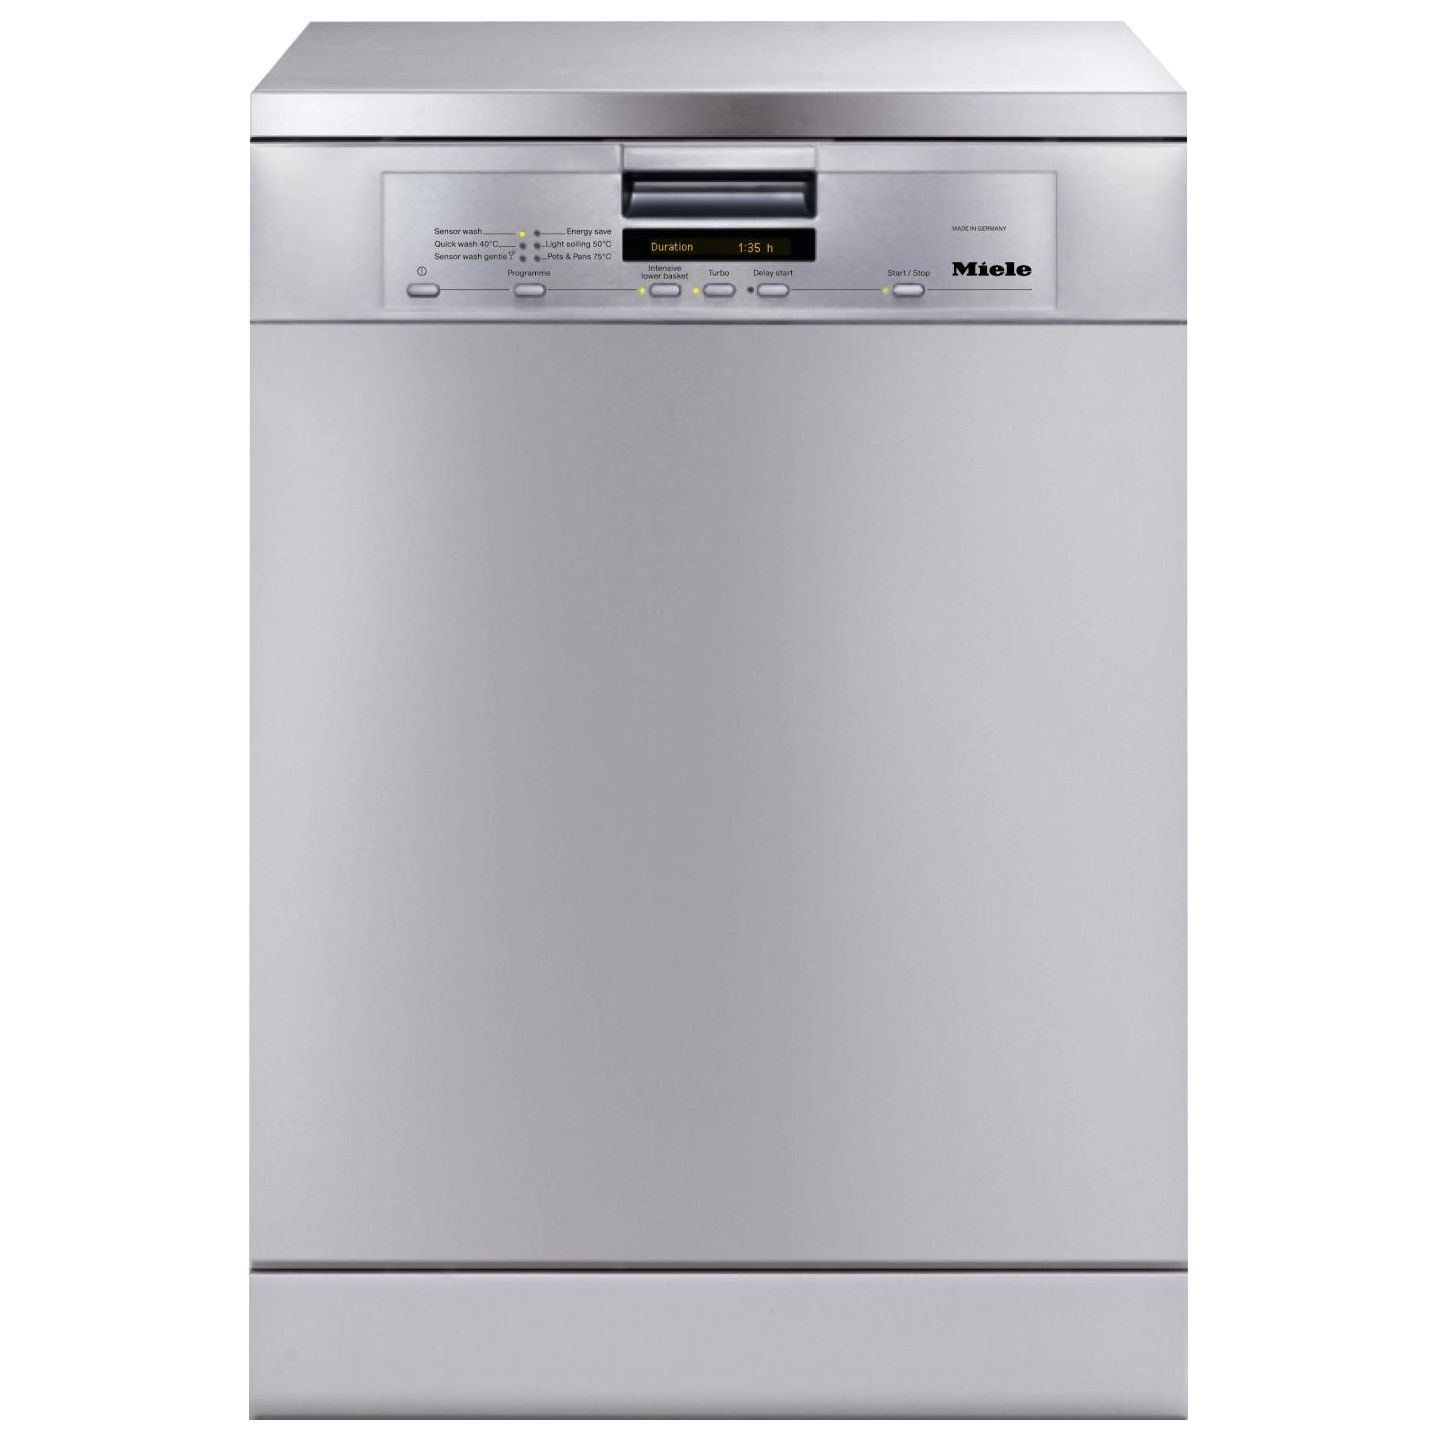 Miele G5500SCclst Dishwasher, Stainless Steel at John Lewis